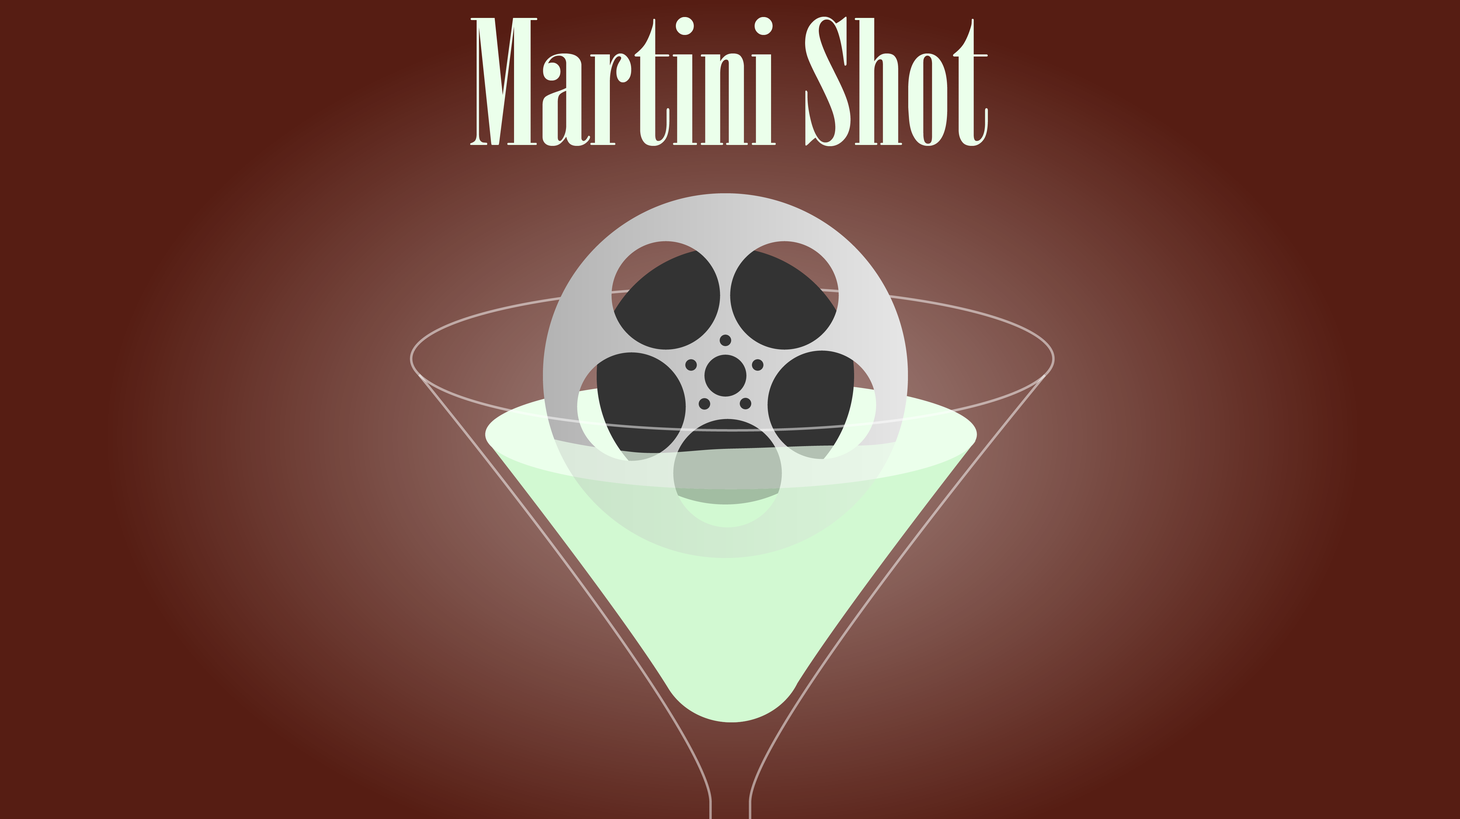 This is Rob Long and on today's Martini Shot I clean things out for the new year. Digitally, I mean, Clips and ideas and files from an extremely cluttered Dropbox, iCloud, and Evernote.